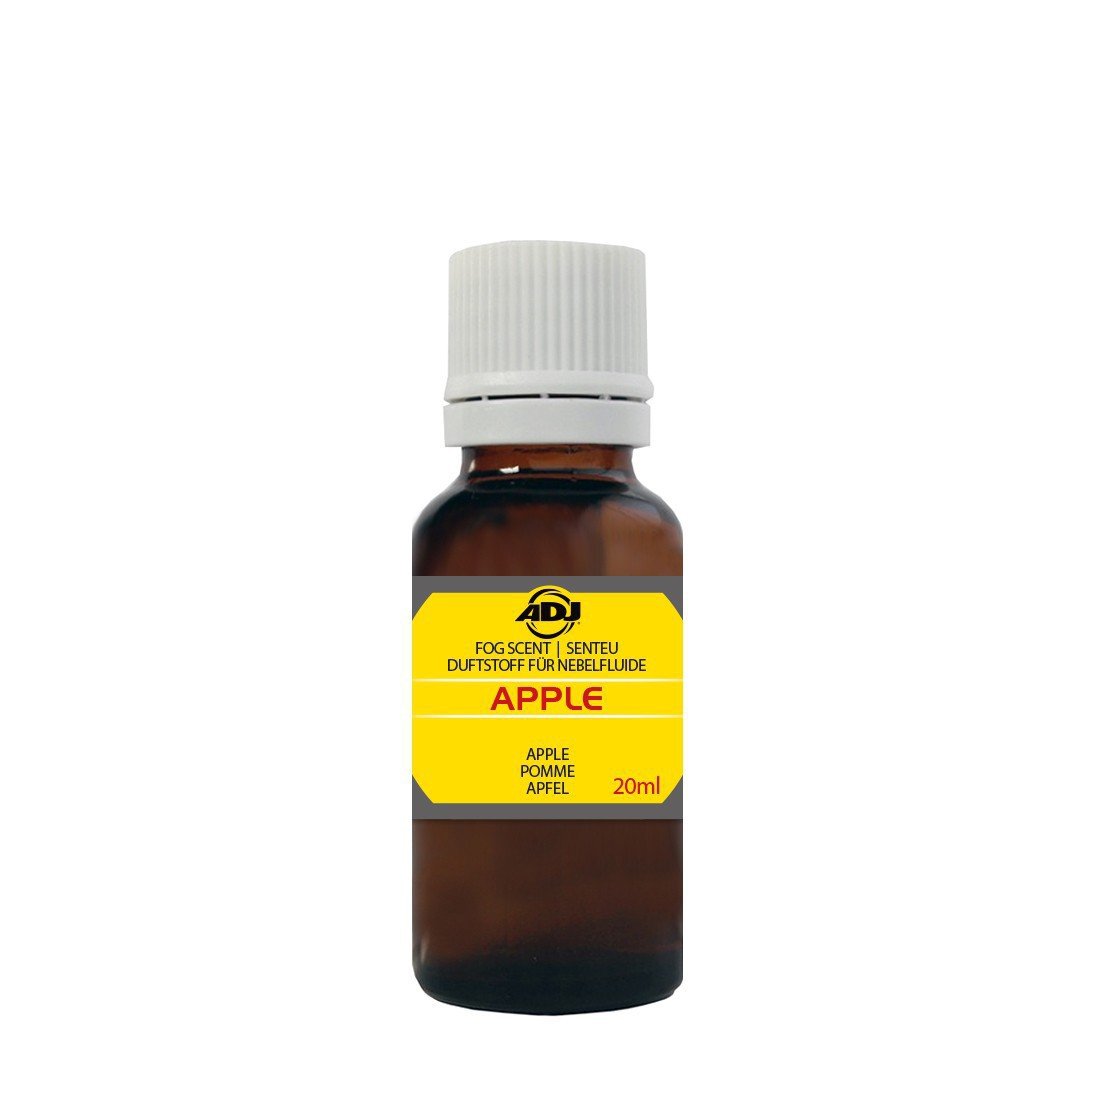 American DJ fog scent apple 20ml - Zapach do dymu